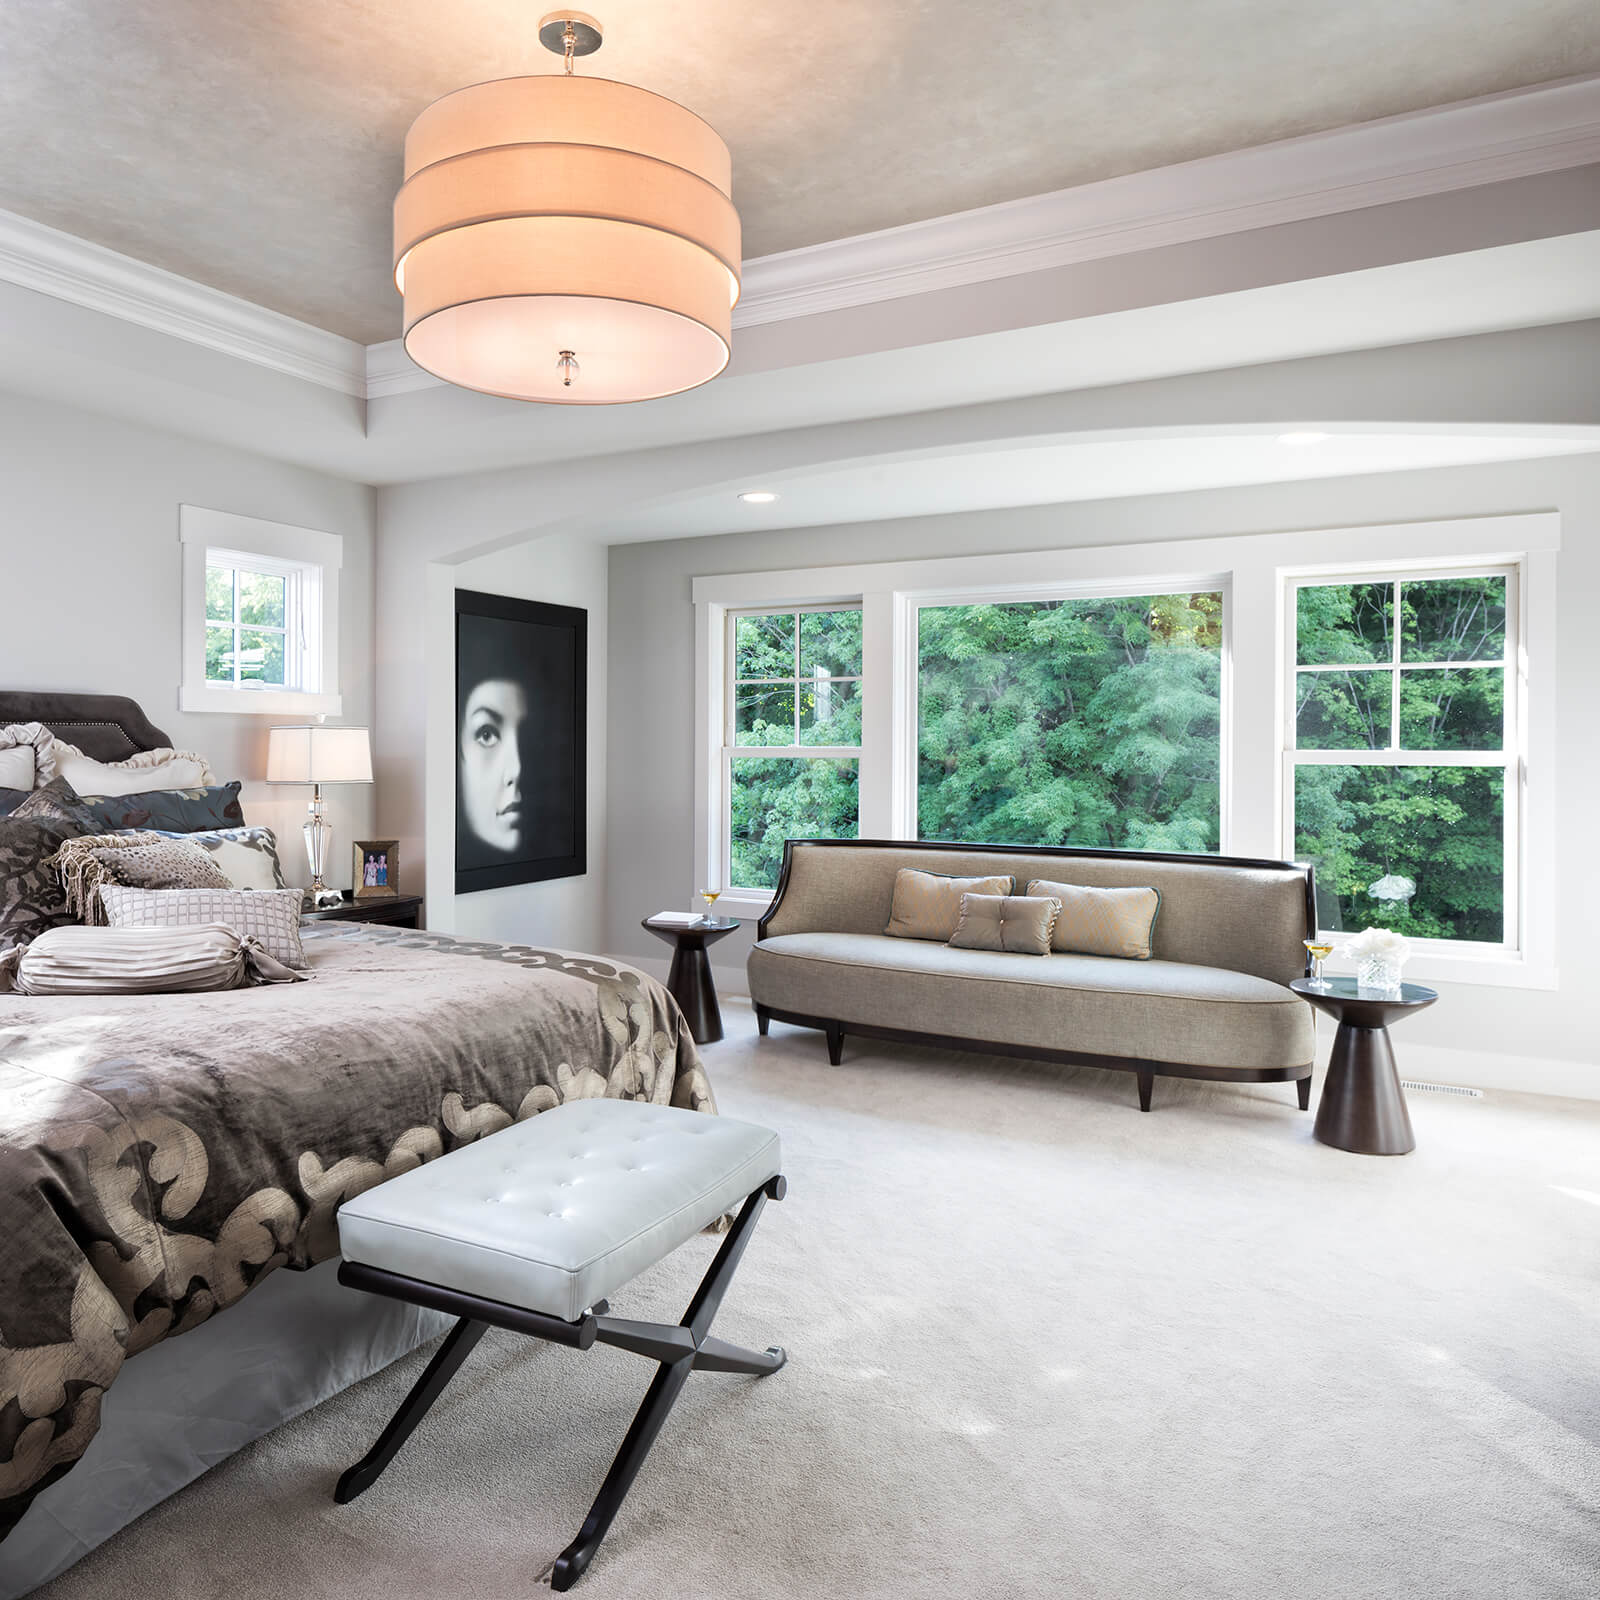 Large bedroom with Marvin Elevate Awning Windows, Elevate Double Hung Windows and Elevate Picture Windows